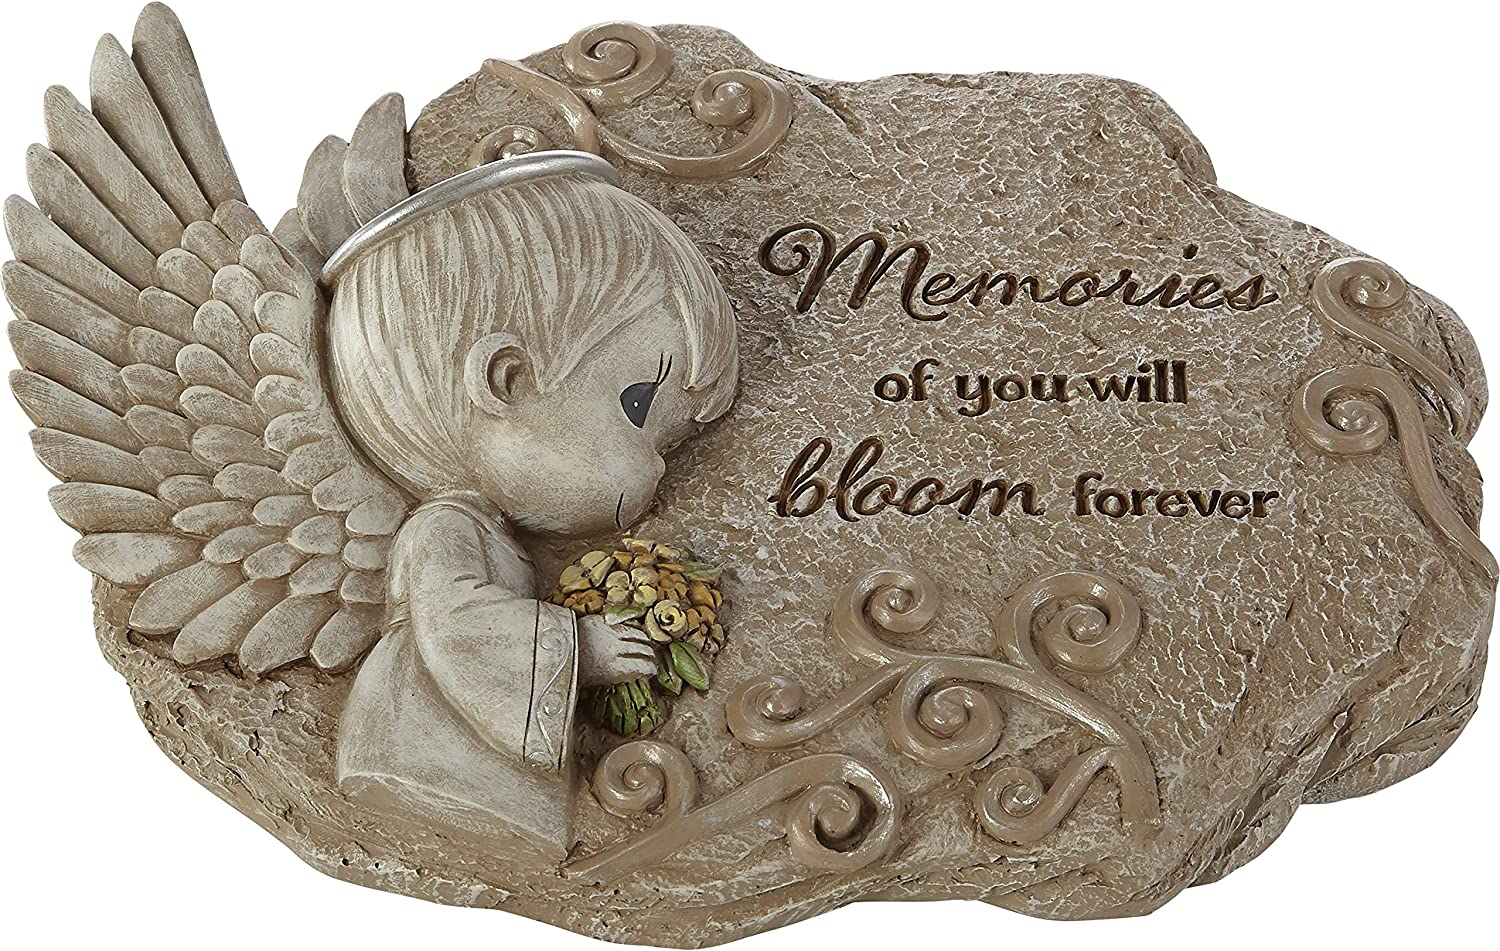 Precious Moments 203111 Memories of You Will Bloom Forever Resin Garden Stone, Multicolor